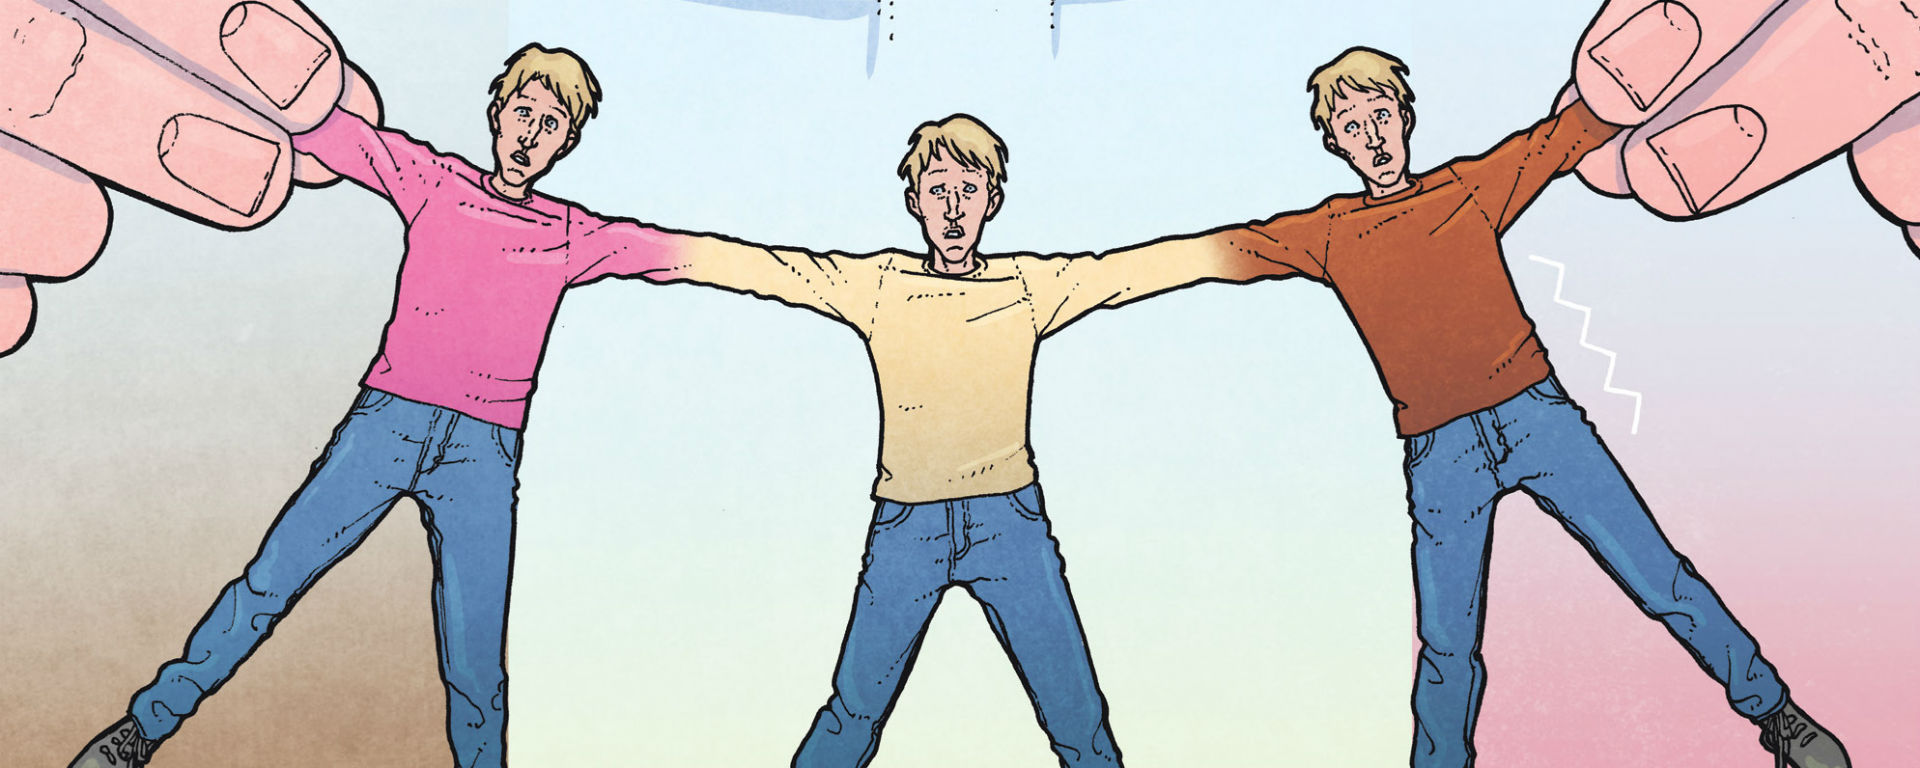 image comics ice cream man 6 review feature image